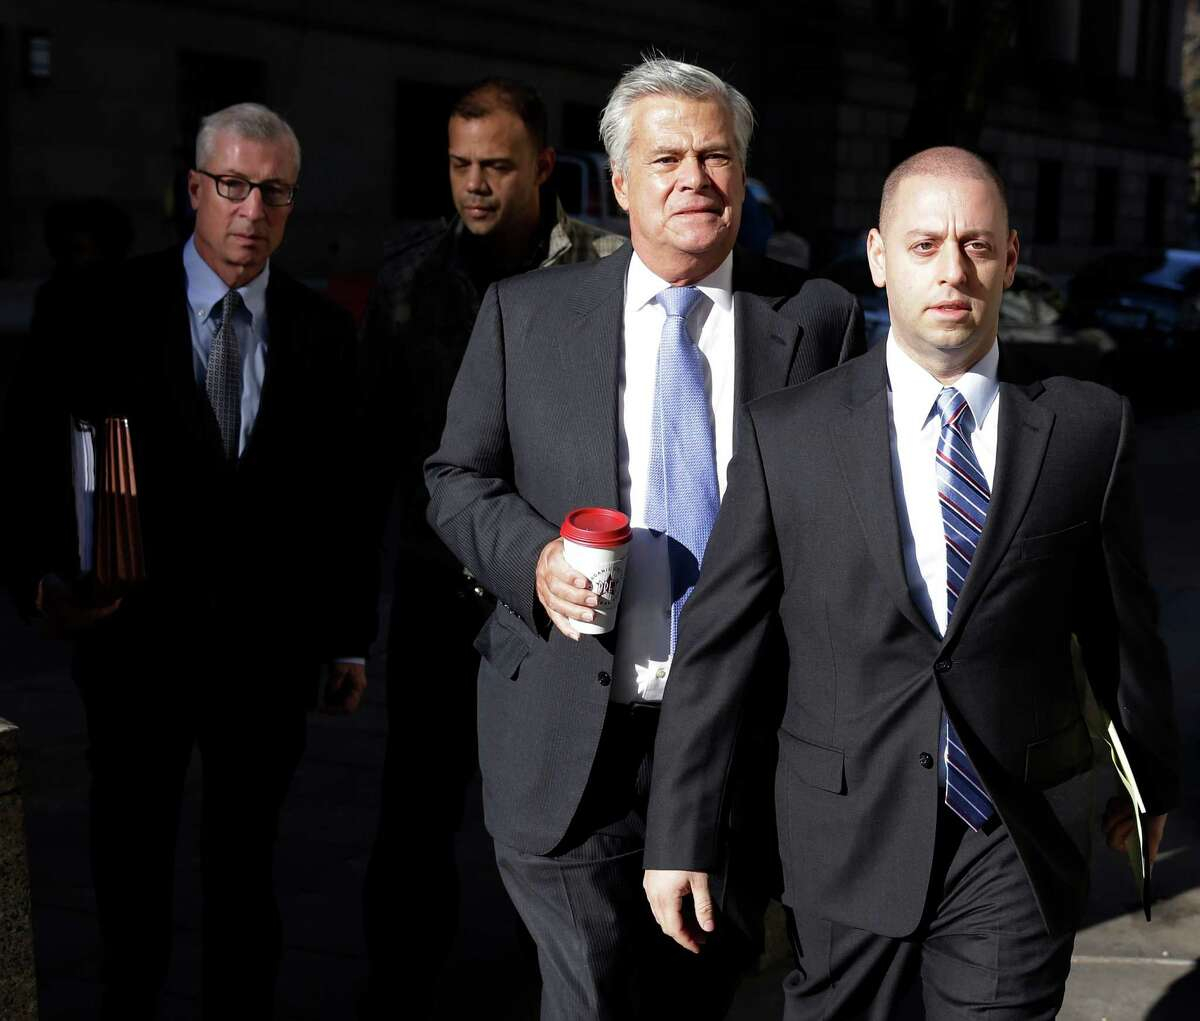 New York Sen. Dean Skelos, second from right, and his son Adam Skelos, right, arrive to court in New York, Tuesday, Nov. 17, 2015. Jury selection is expected to continue Tuesday in the corruption trial of Skelos, who is facing federal charges that he extorted bribes from companies with business before the state. (AP Photo/Seth Wenig) ORG XMIT: NYSW101